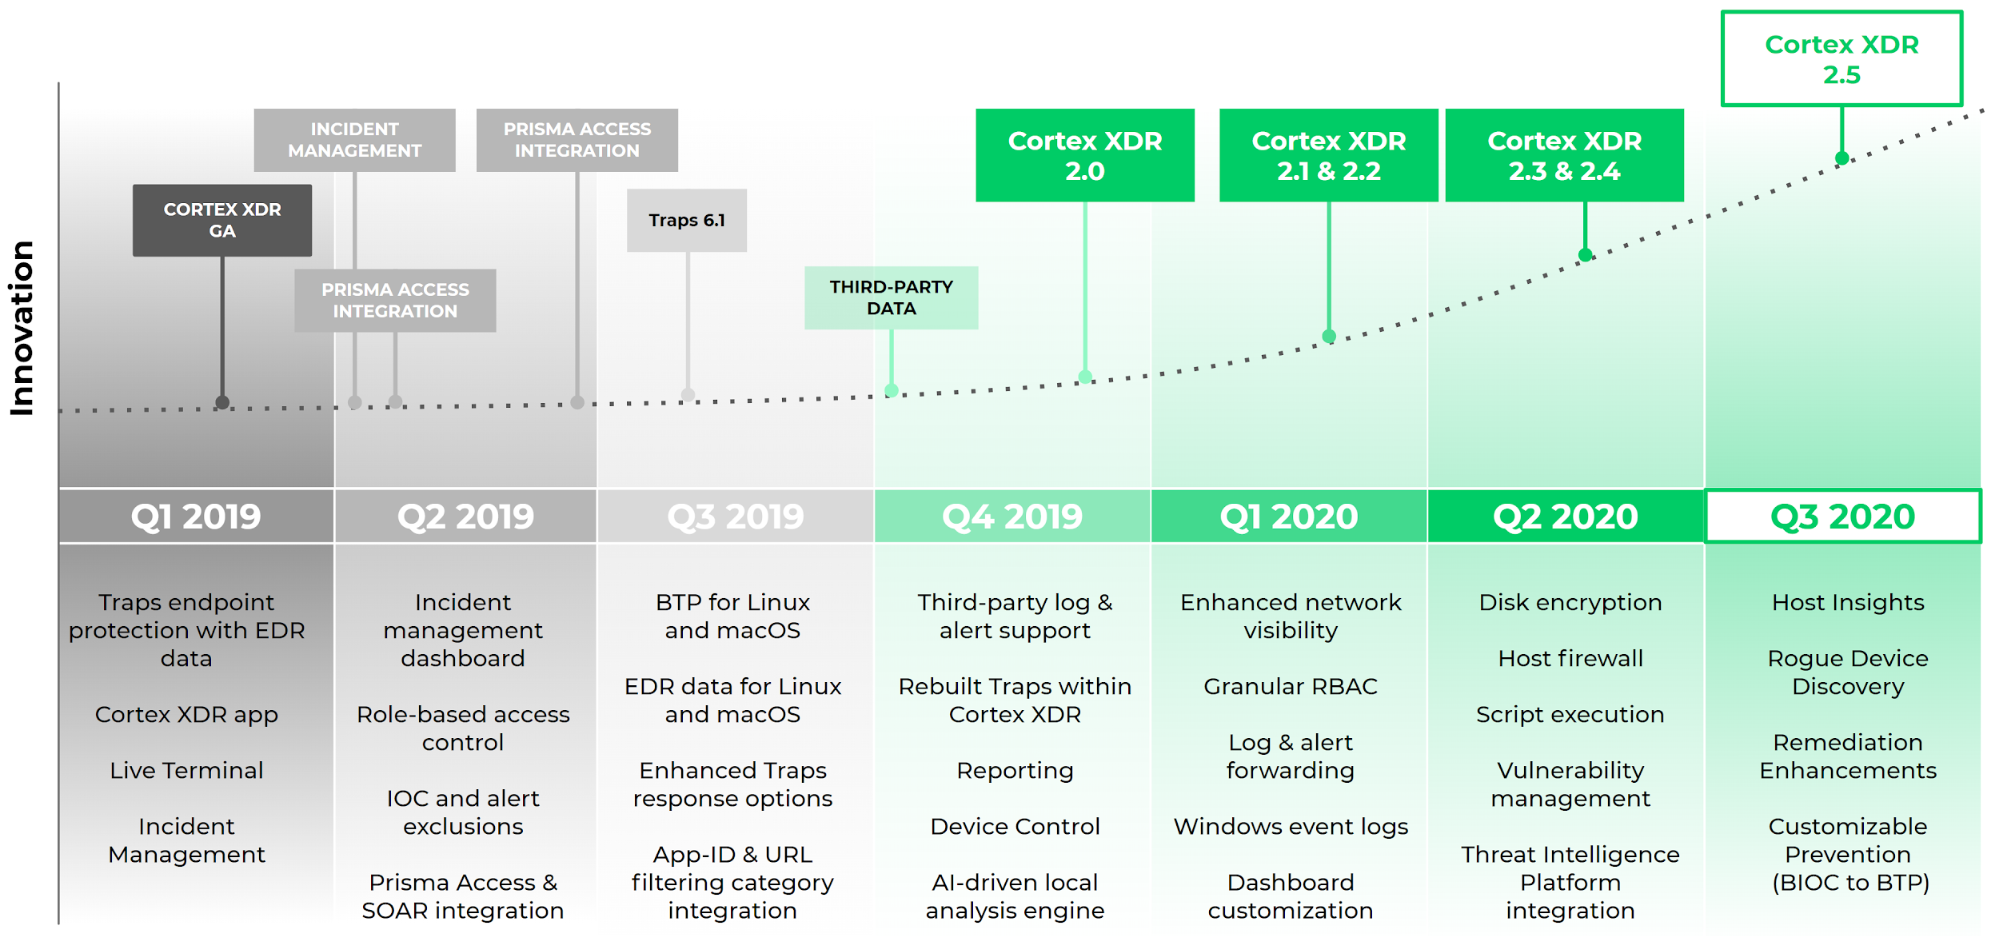 Our Rapid Pace of Innovation: The timeline shows a timeline of Cortex XDR releases, beginning with the Cortex XDR GA in Q1 2019, going up until the launch of Cortex XDR 2.5 in Q3 2020.